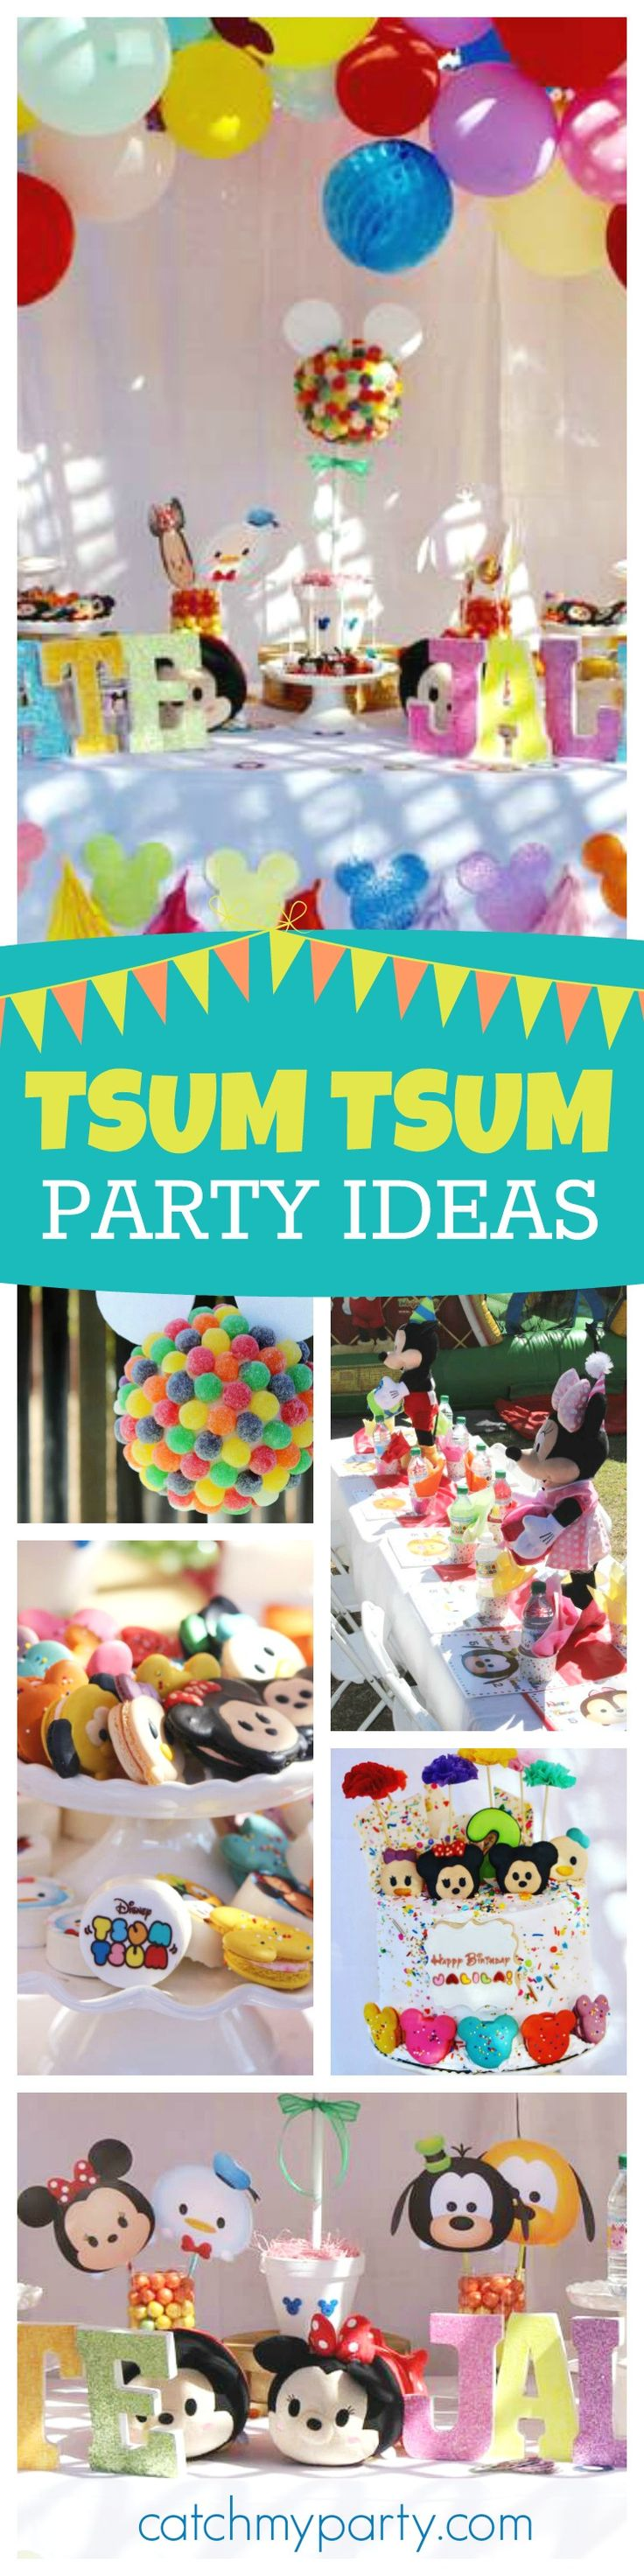 Check out this adorable Disney Tsum Tsum Birthday party for a brother and sister. The Tsum Tsum macaroons are just too cute! See more party ideas and share yours at CatchMyParty.com